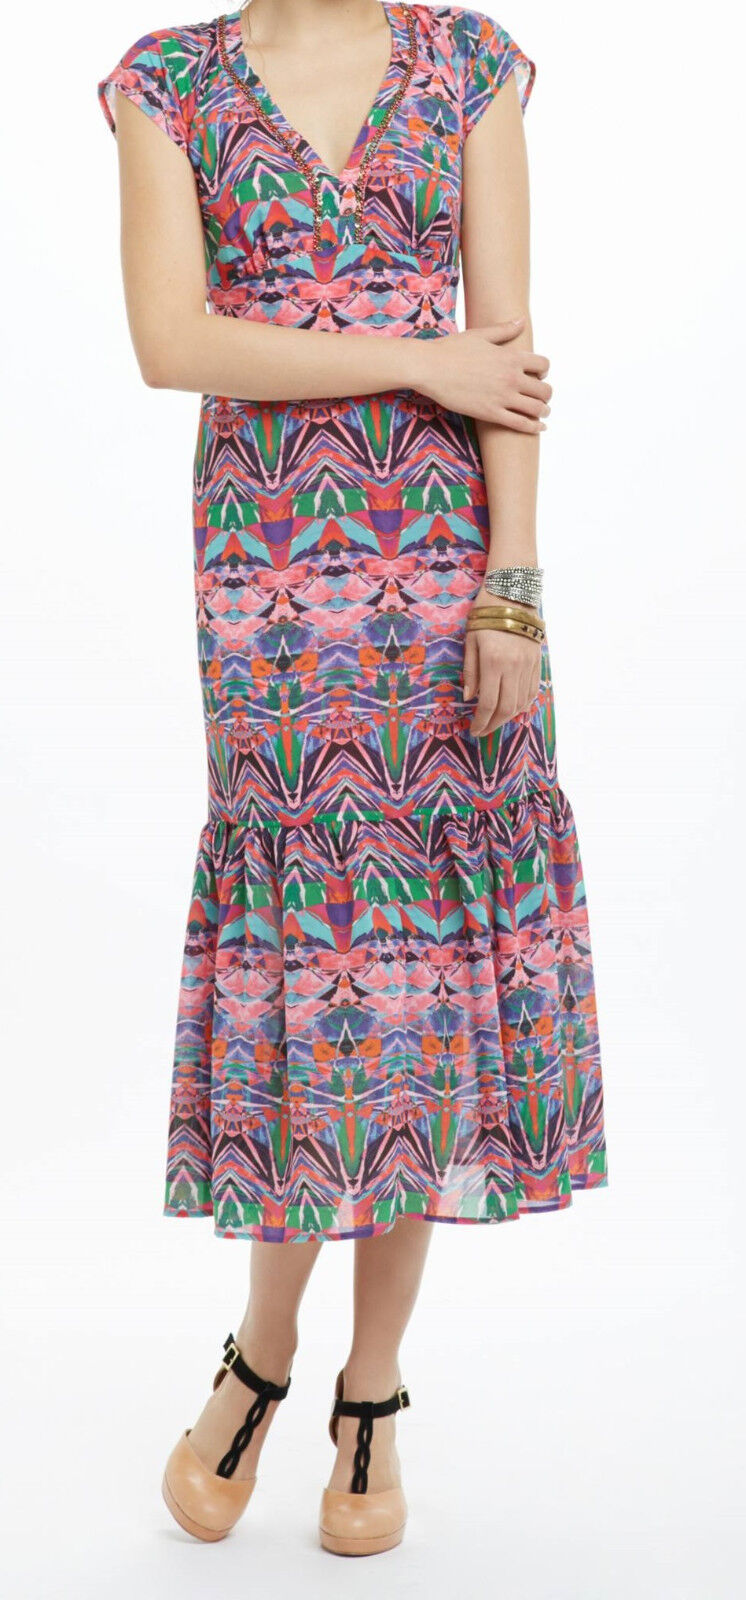 Vanessa Virginia Mural Maxi Dress Dress Dress Size 8 NWT Red Motif NW ANTHROPOLOGIE Tag 538f83